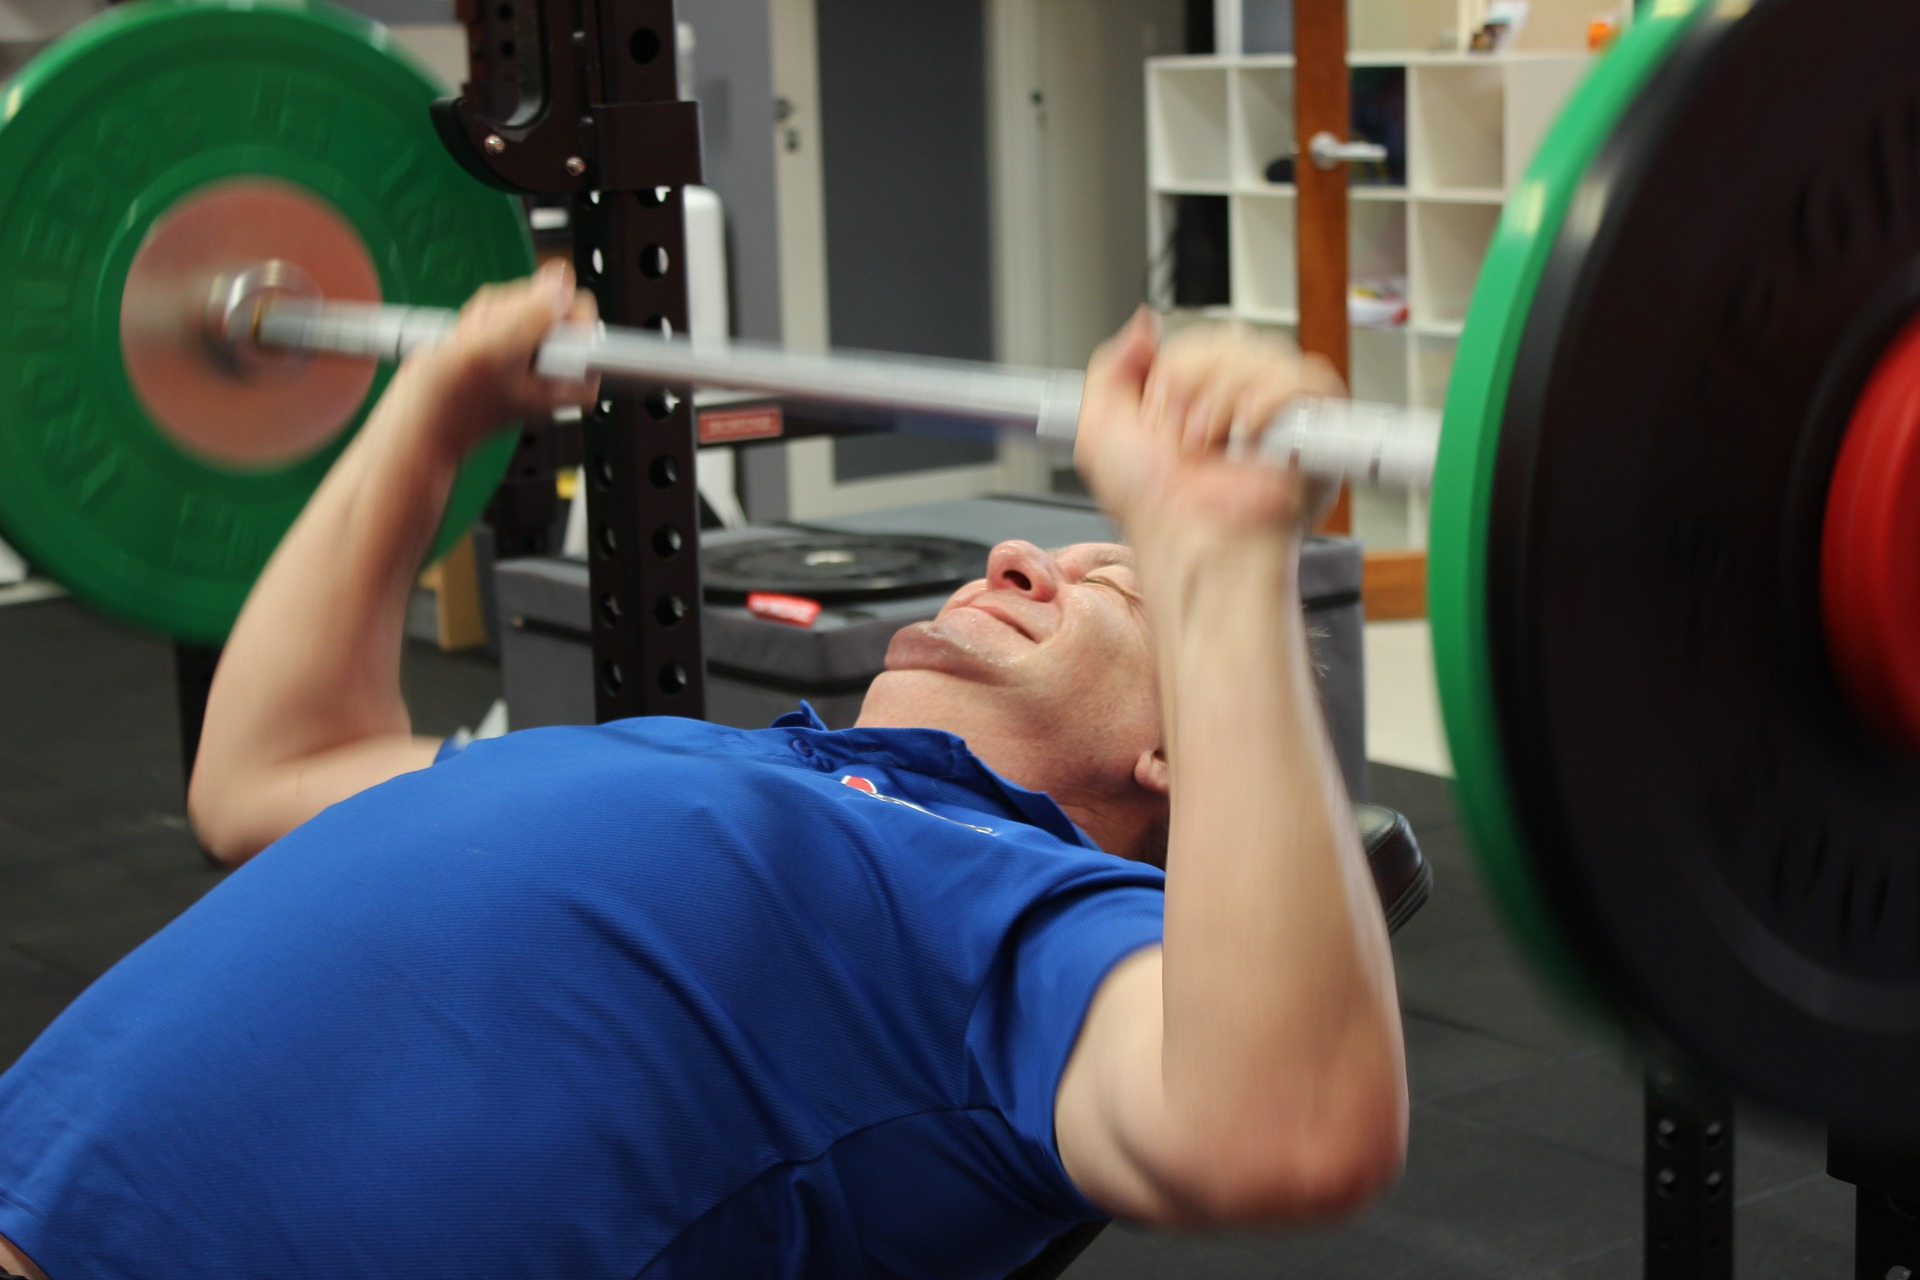 Bench Pressing with a Thoracic Aortic Aneurysm?